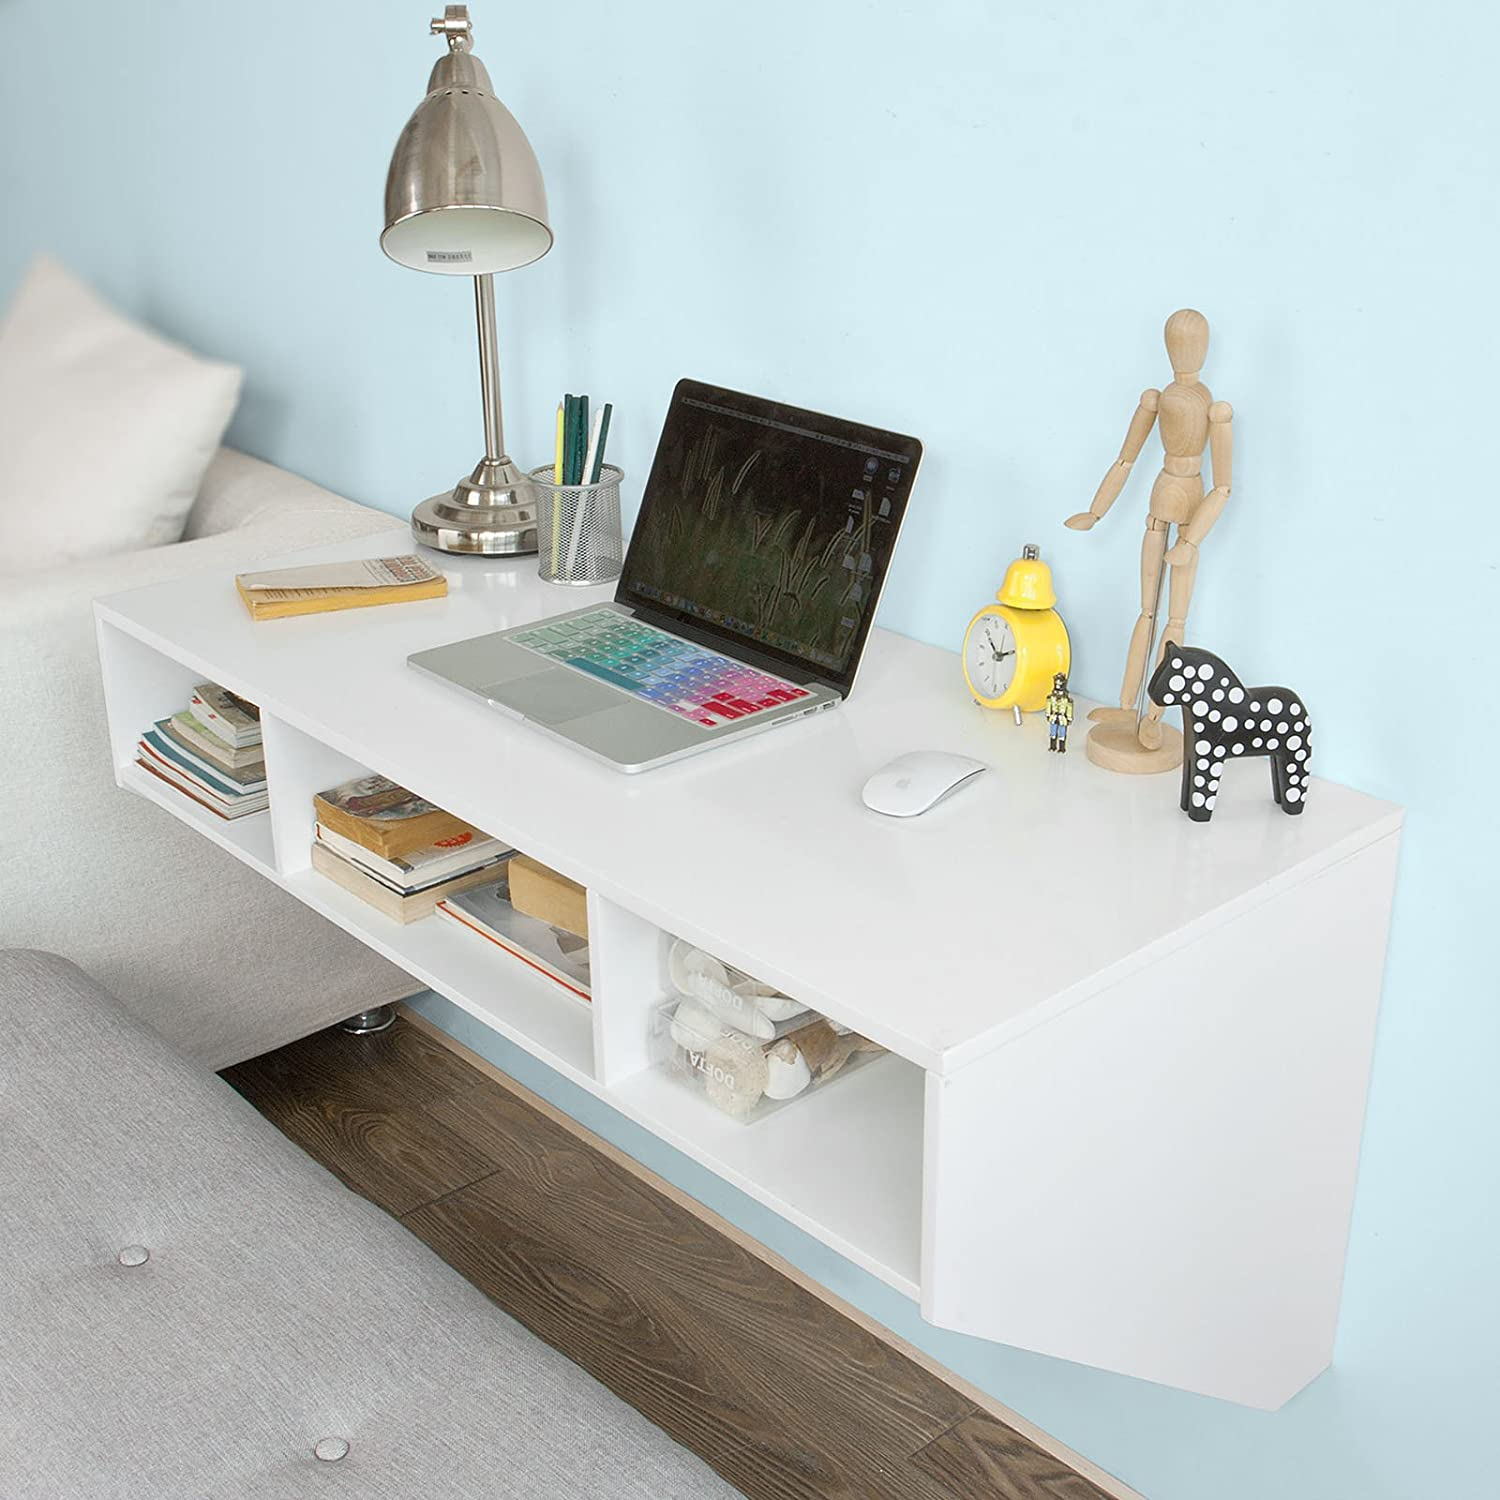 Wall Office Desk Amazon.com: Haotian Wall-mounted Table Desk,Home ...